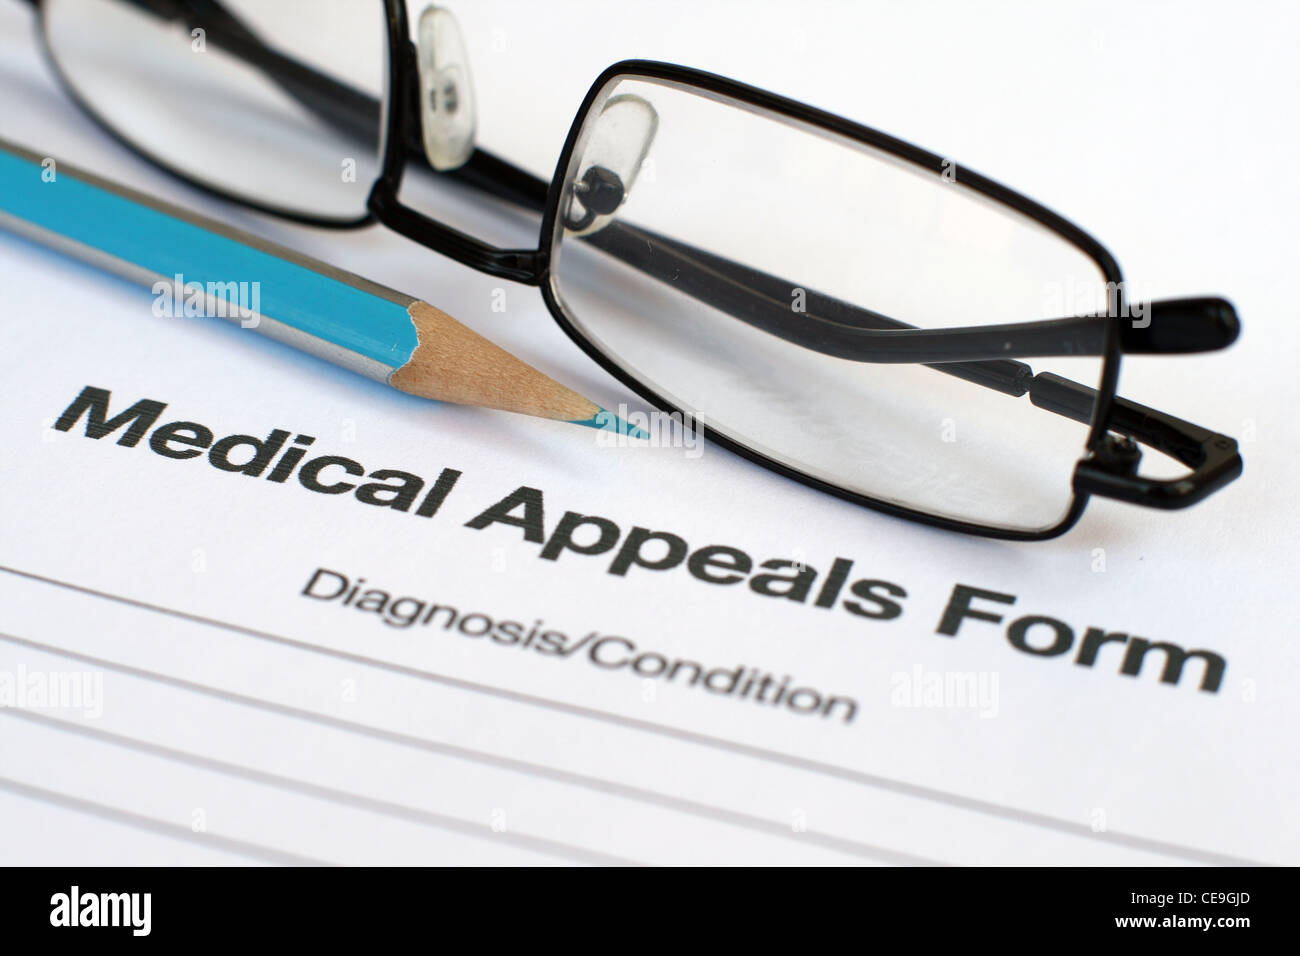 medical appeals form Stock Photo